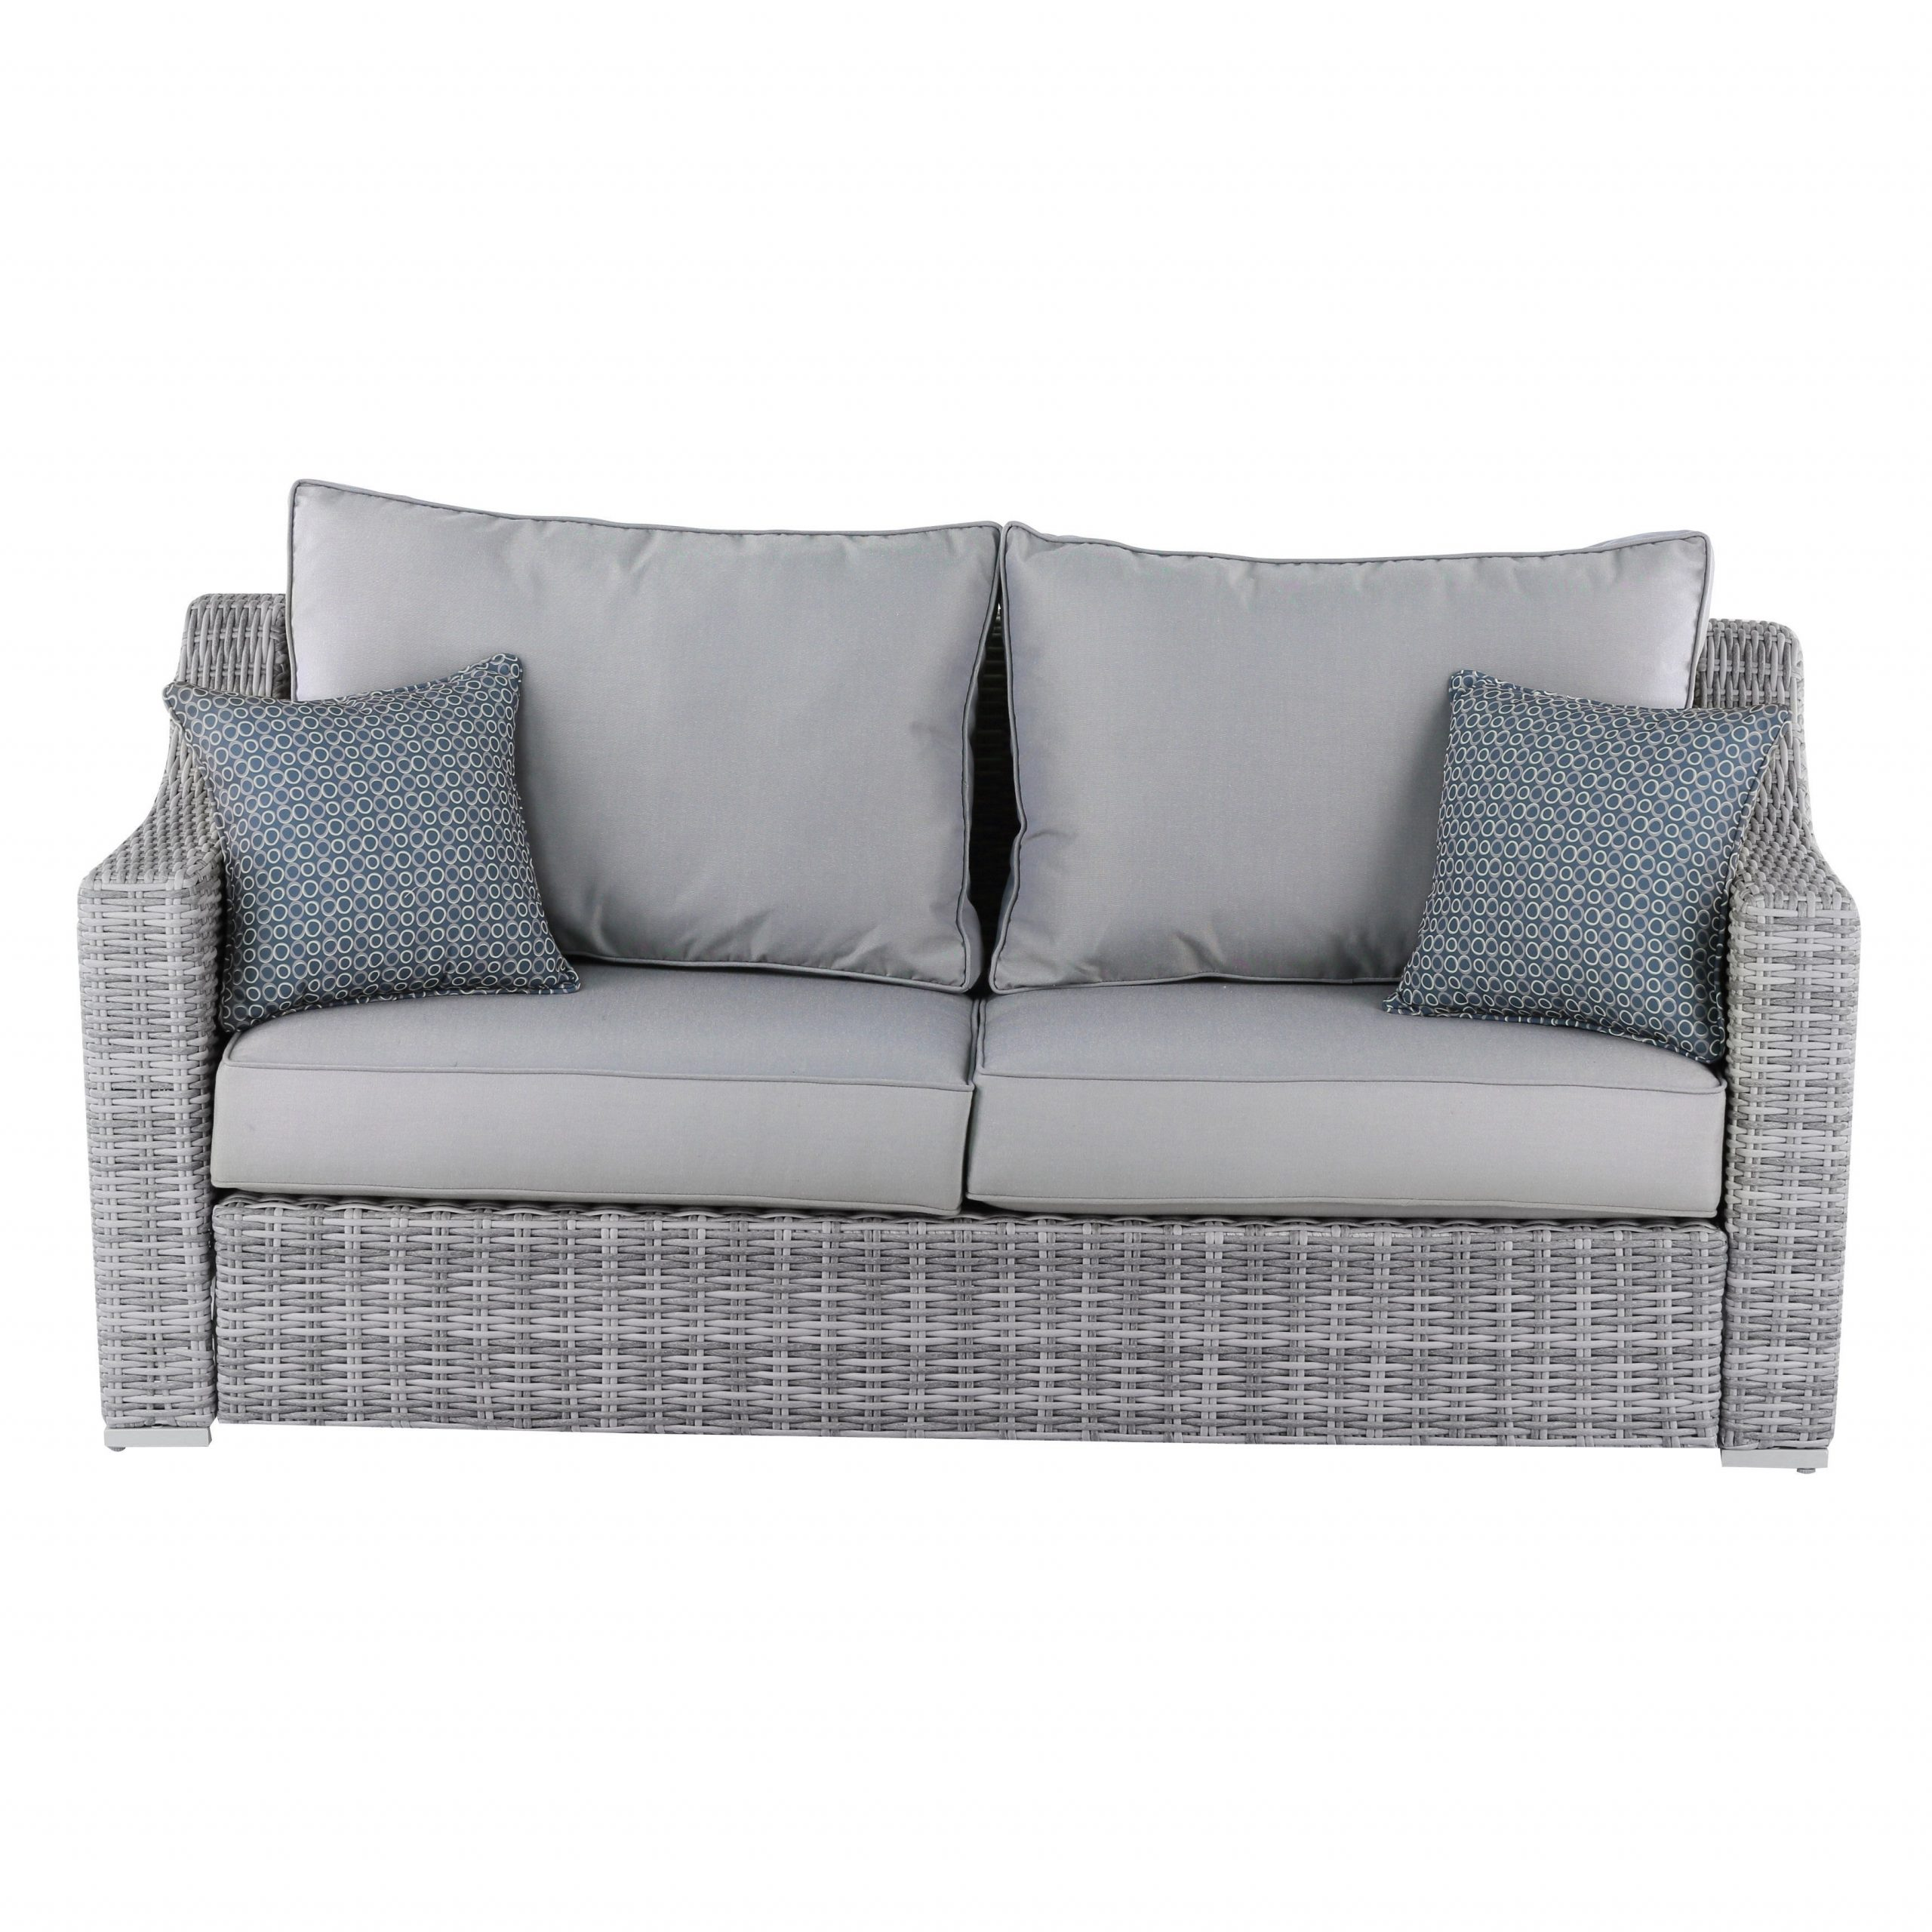 Newest Vallauris Storage Patio Sectionals With Cushions Pertaining To Elle Decor Vallauris Outdoor Sofa (View 6 of 25)